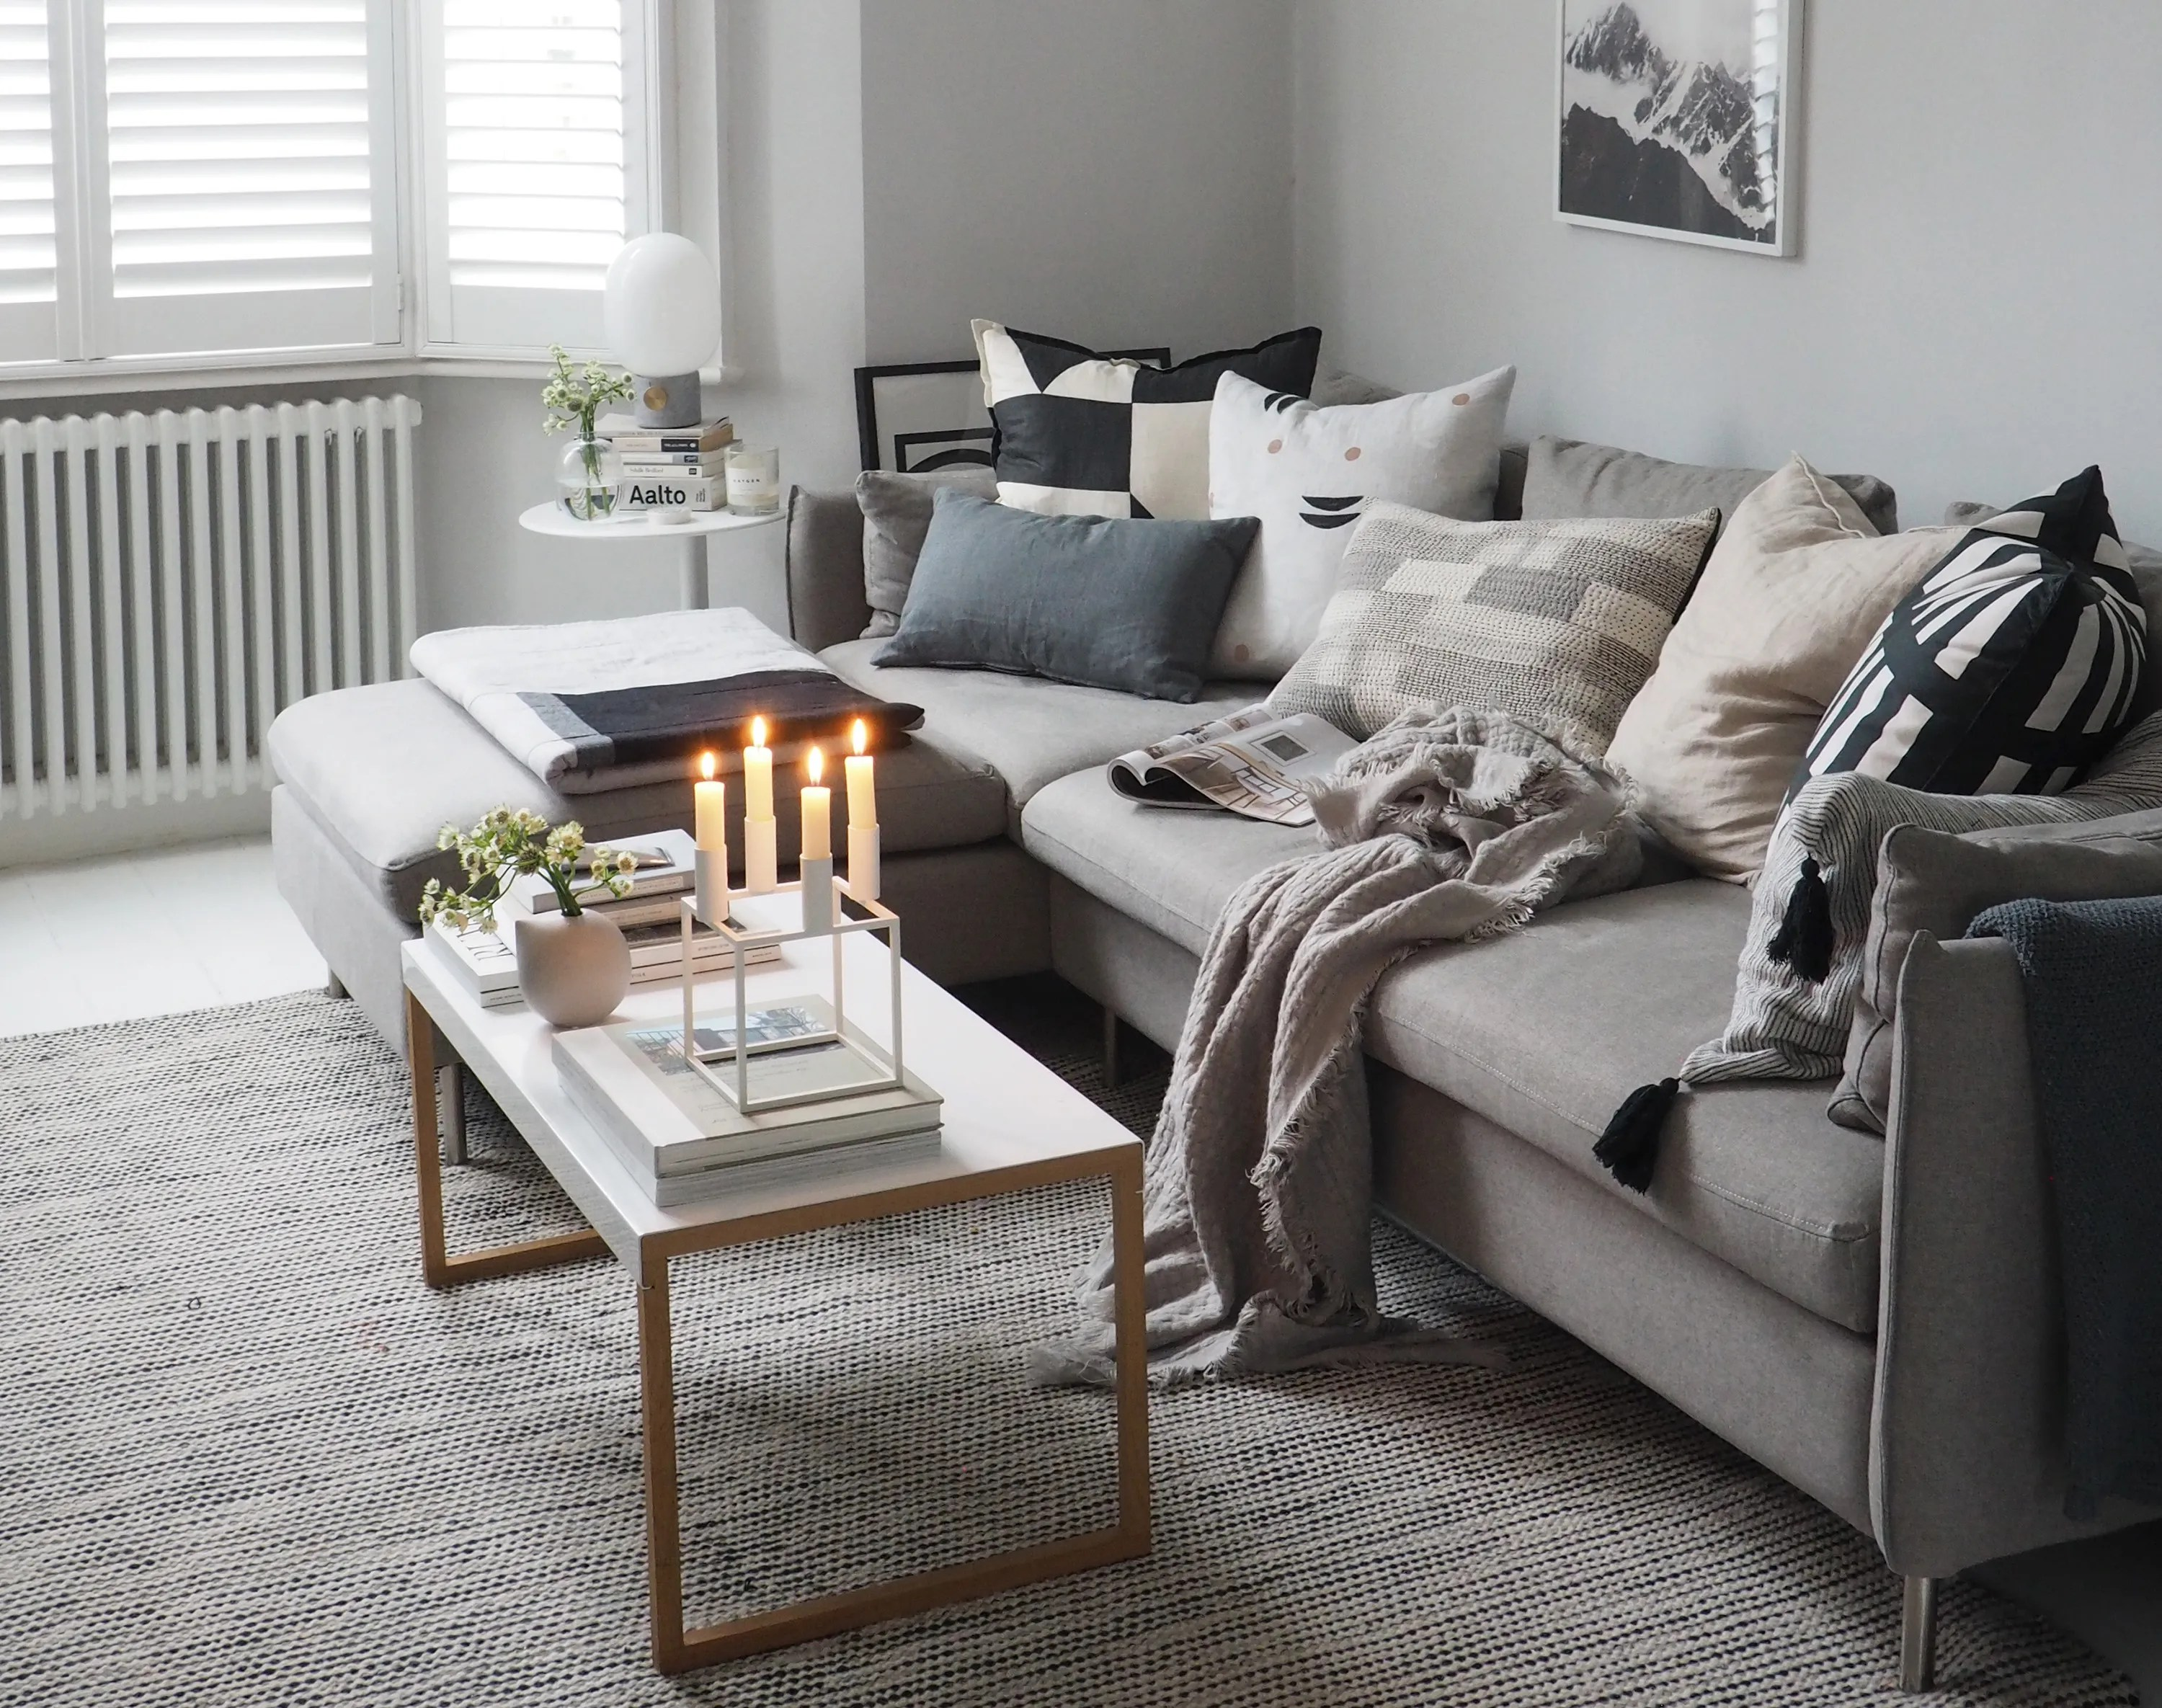 your living room feel cosy